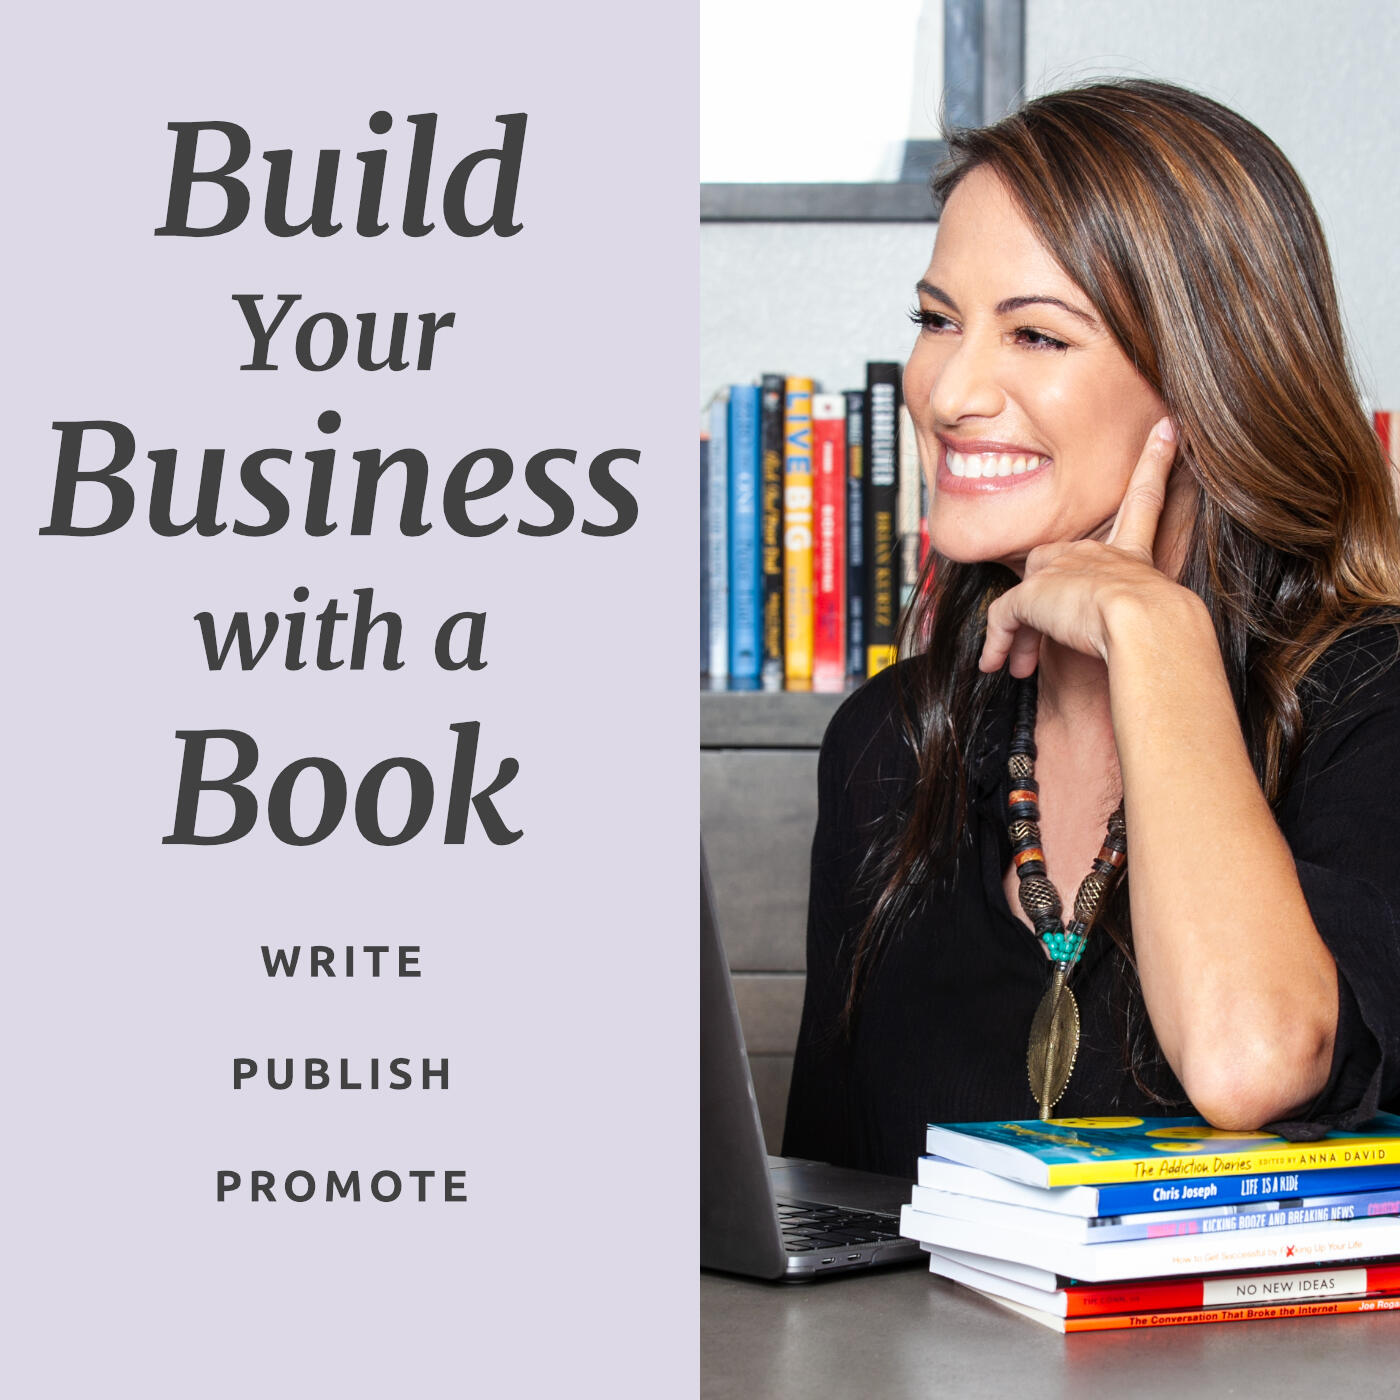 Build Your Business with a Book